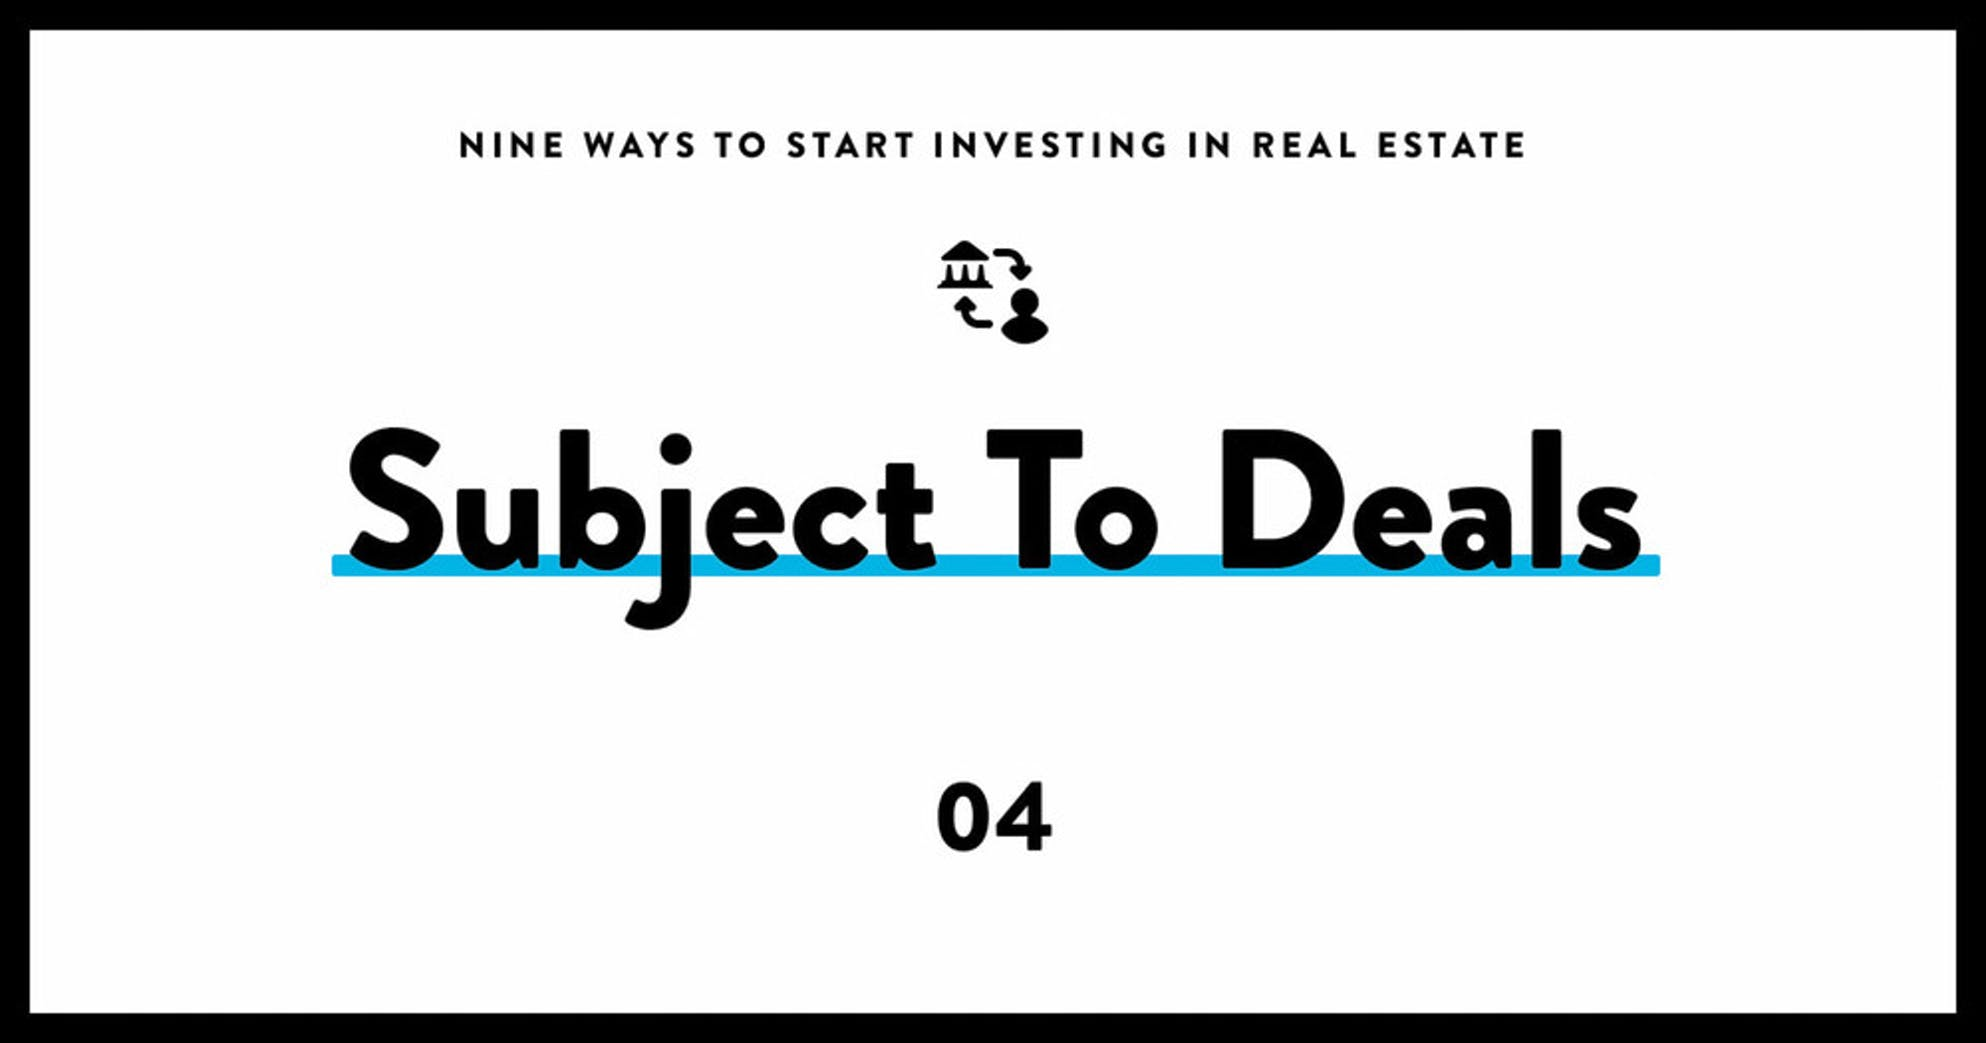 subject to deals 04 - investing in real estate